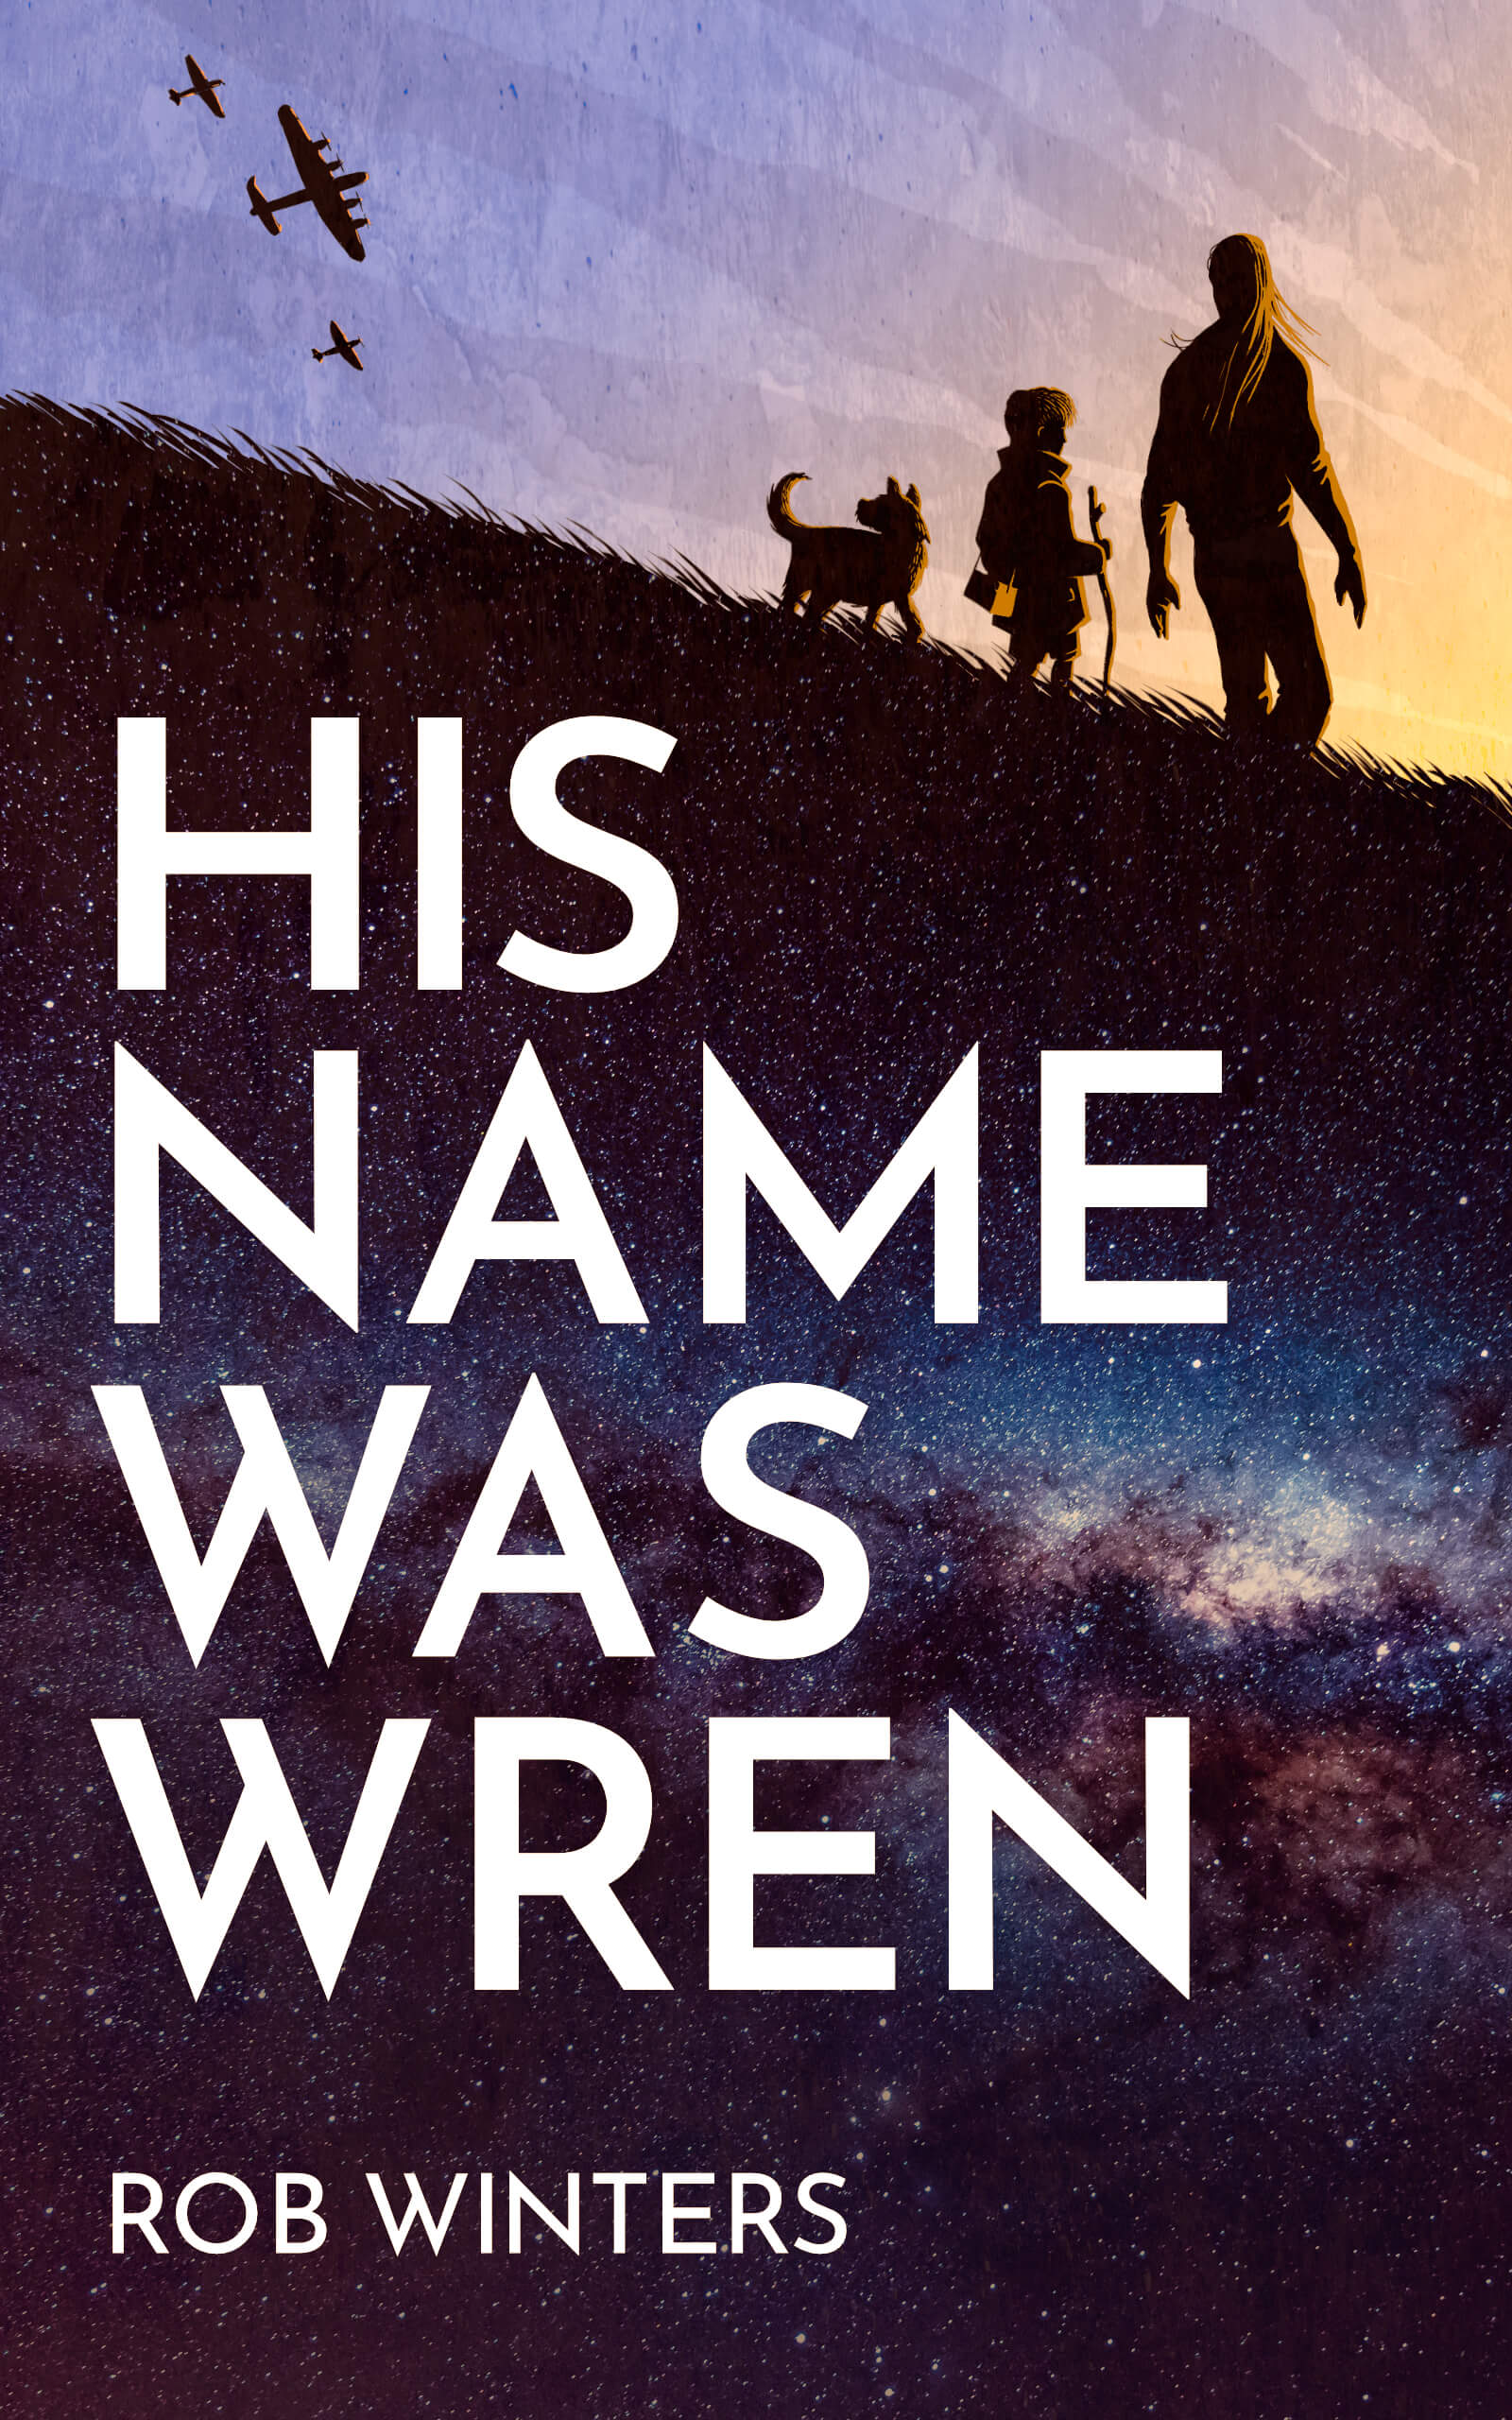 Book cover shows a man, child and dog walking outside on a field. The field faced and blends with a galaxy of stars, while overhead three World War Two planes fly.